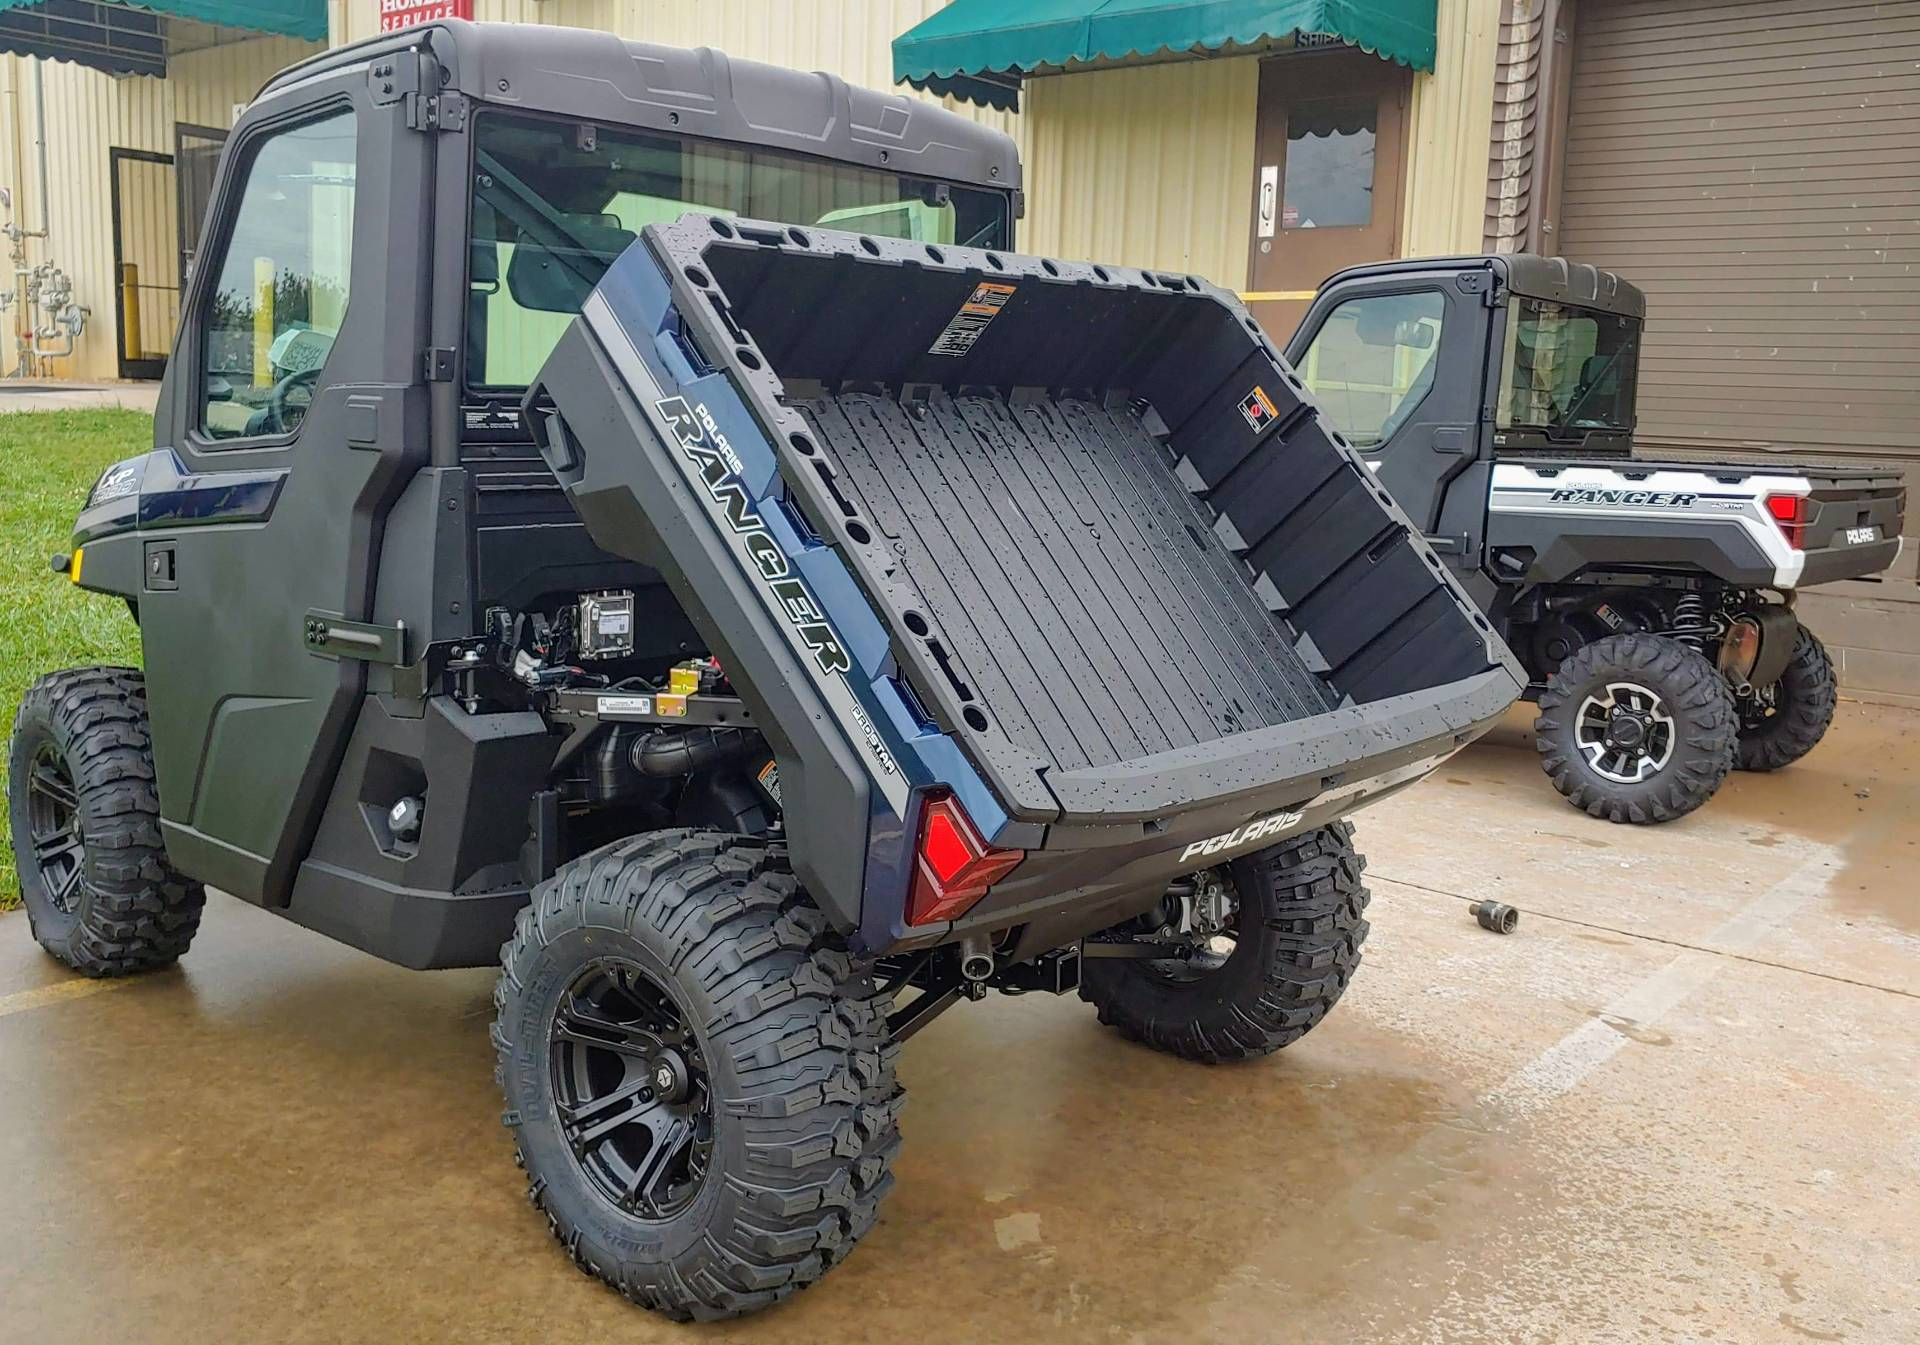 2019 Polaris Ranger XP 1000 EPS Northstar Edition in Statesville, North Carolina - Photo 6